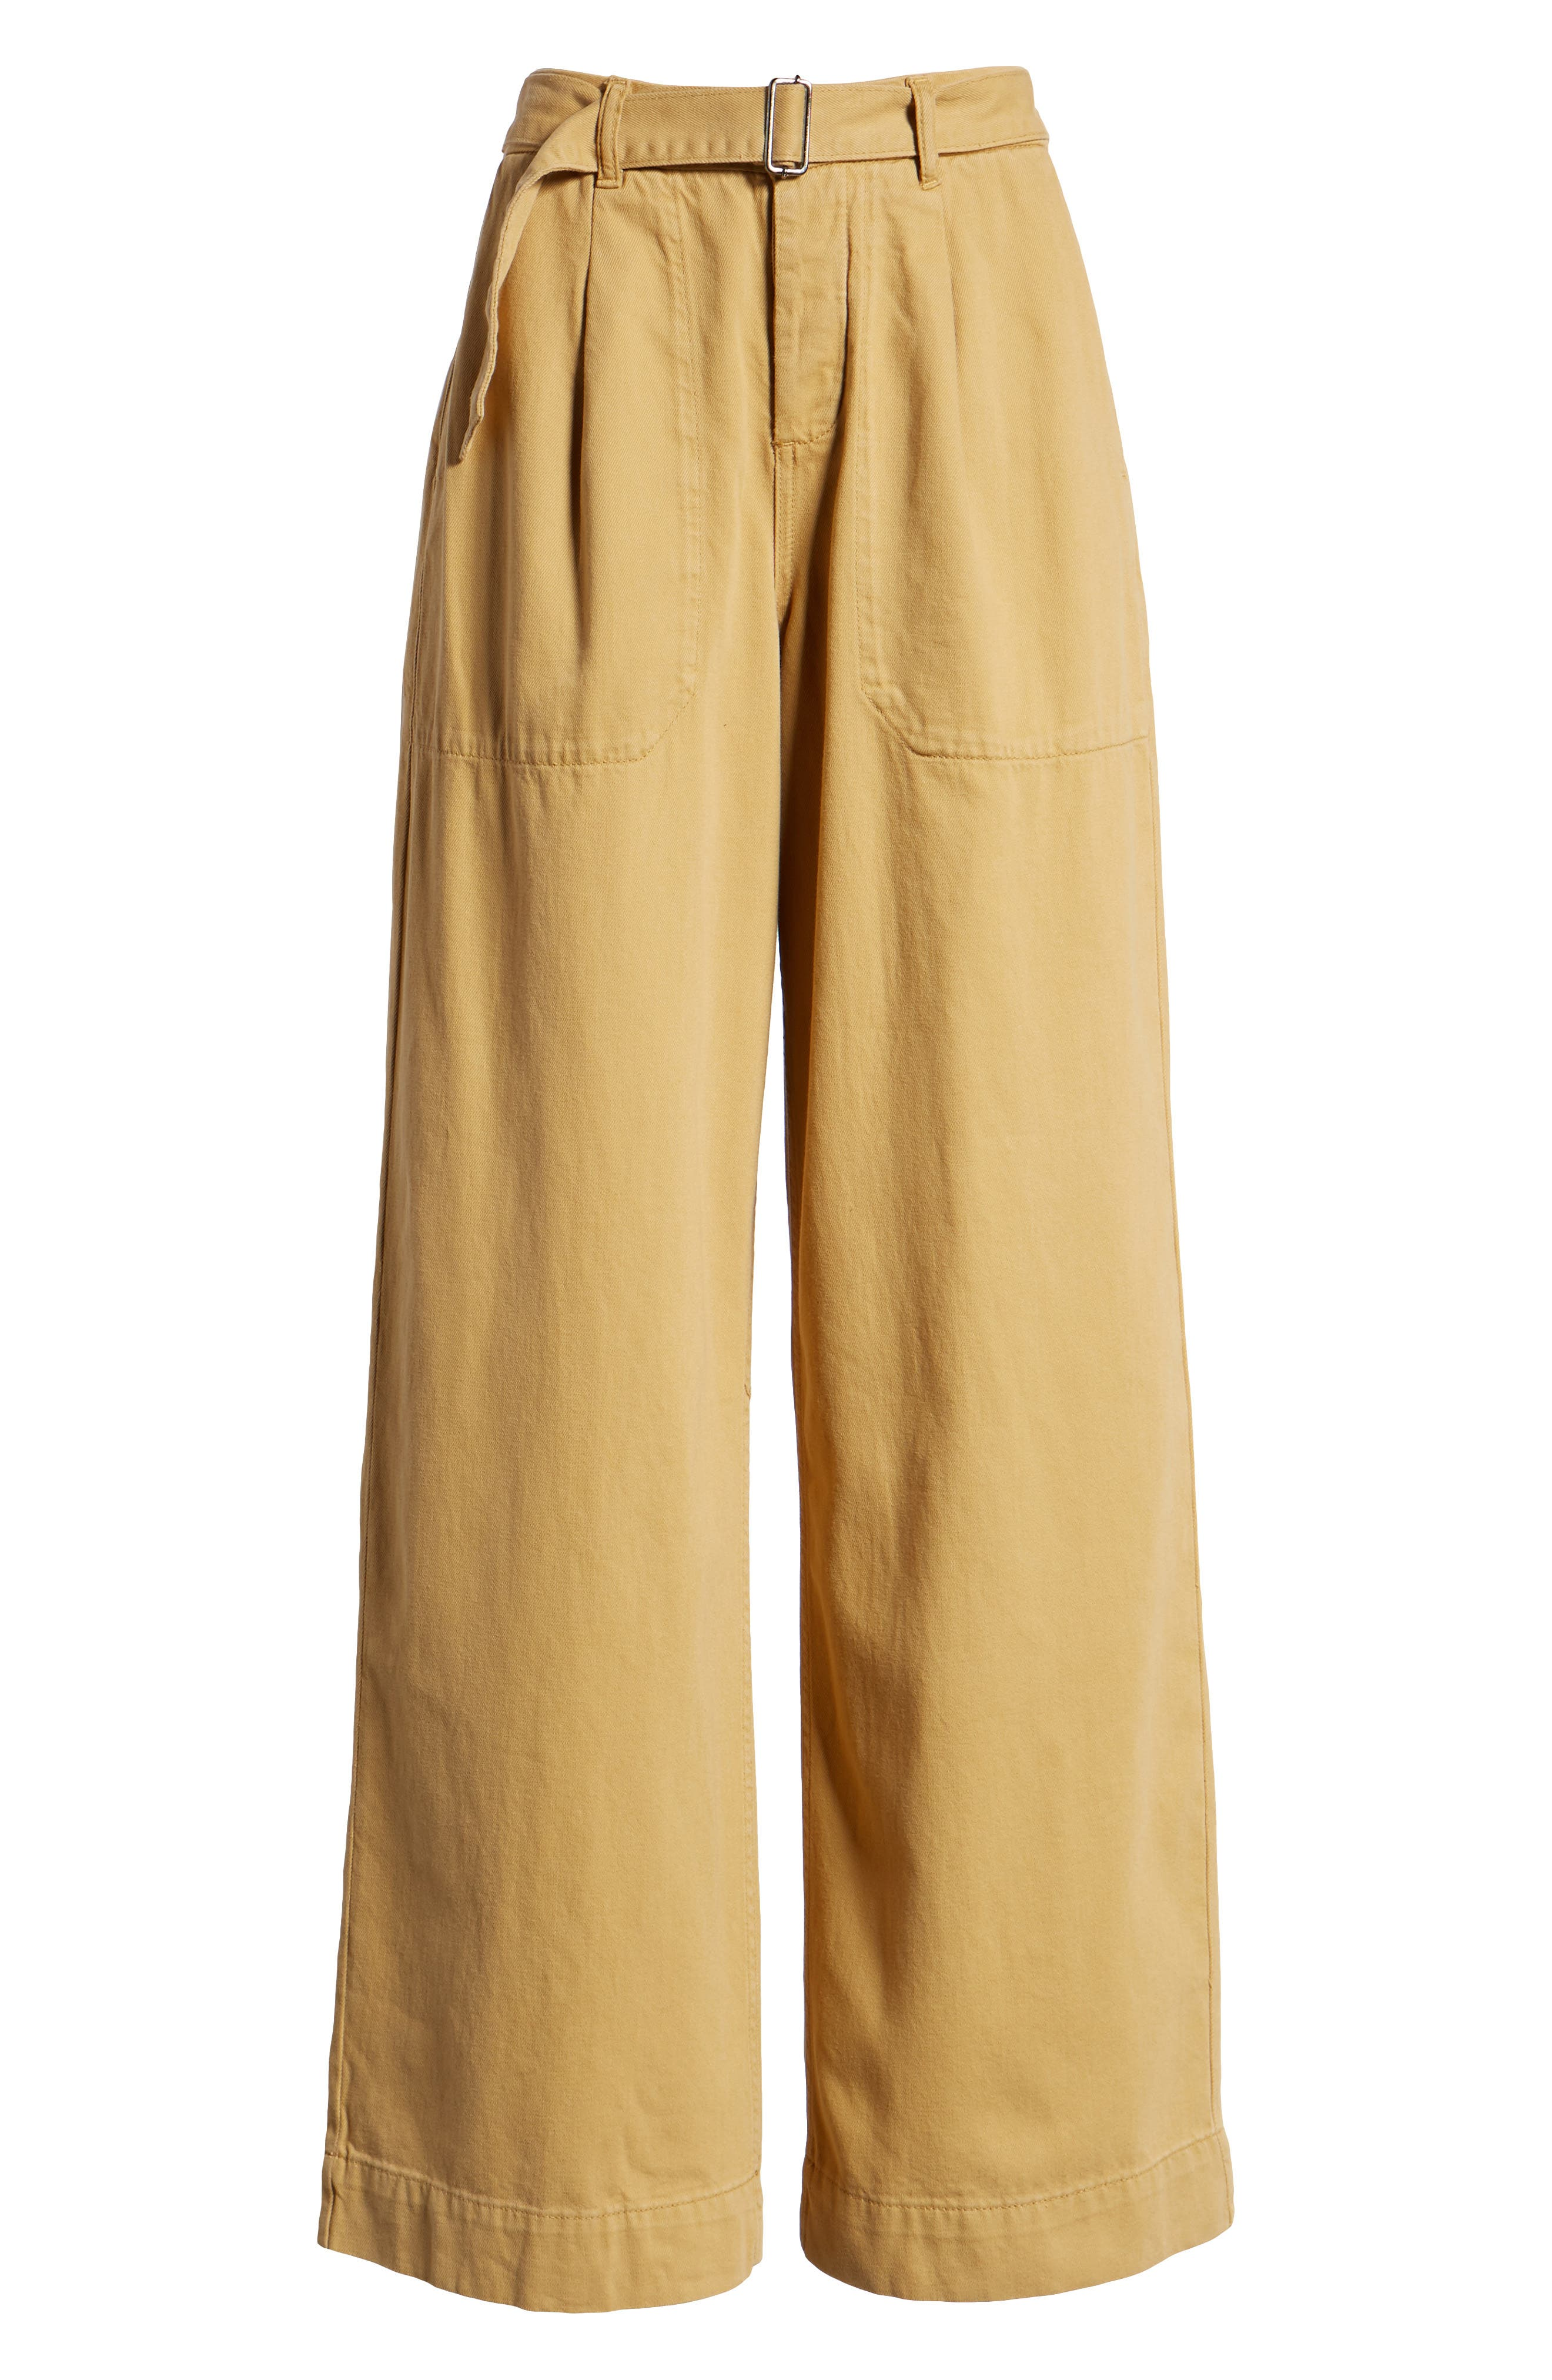 Wonder Wide Chino Trousers,                             Alternate thumbnail 6, color,                             250